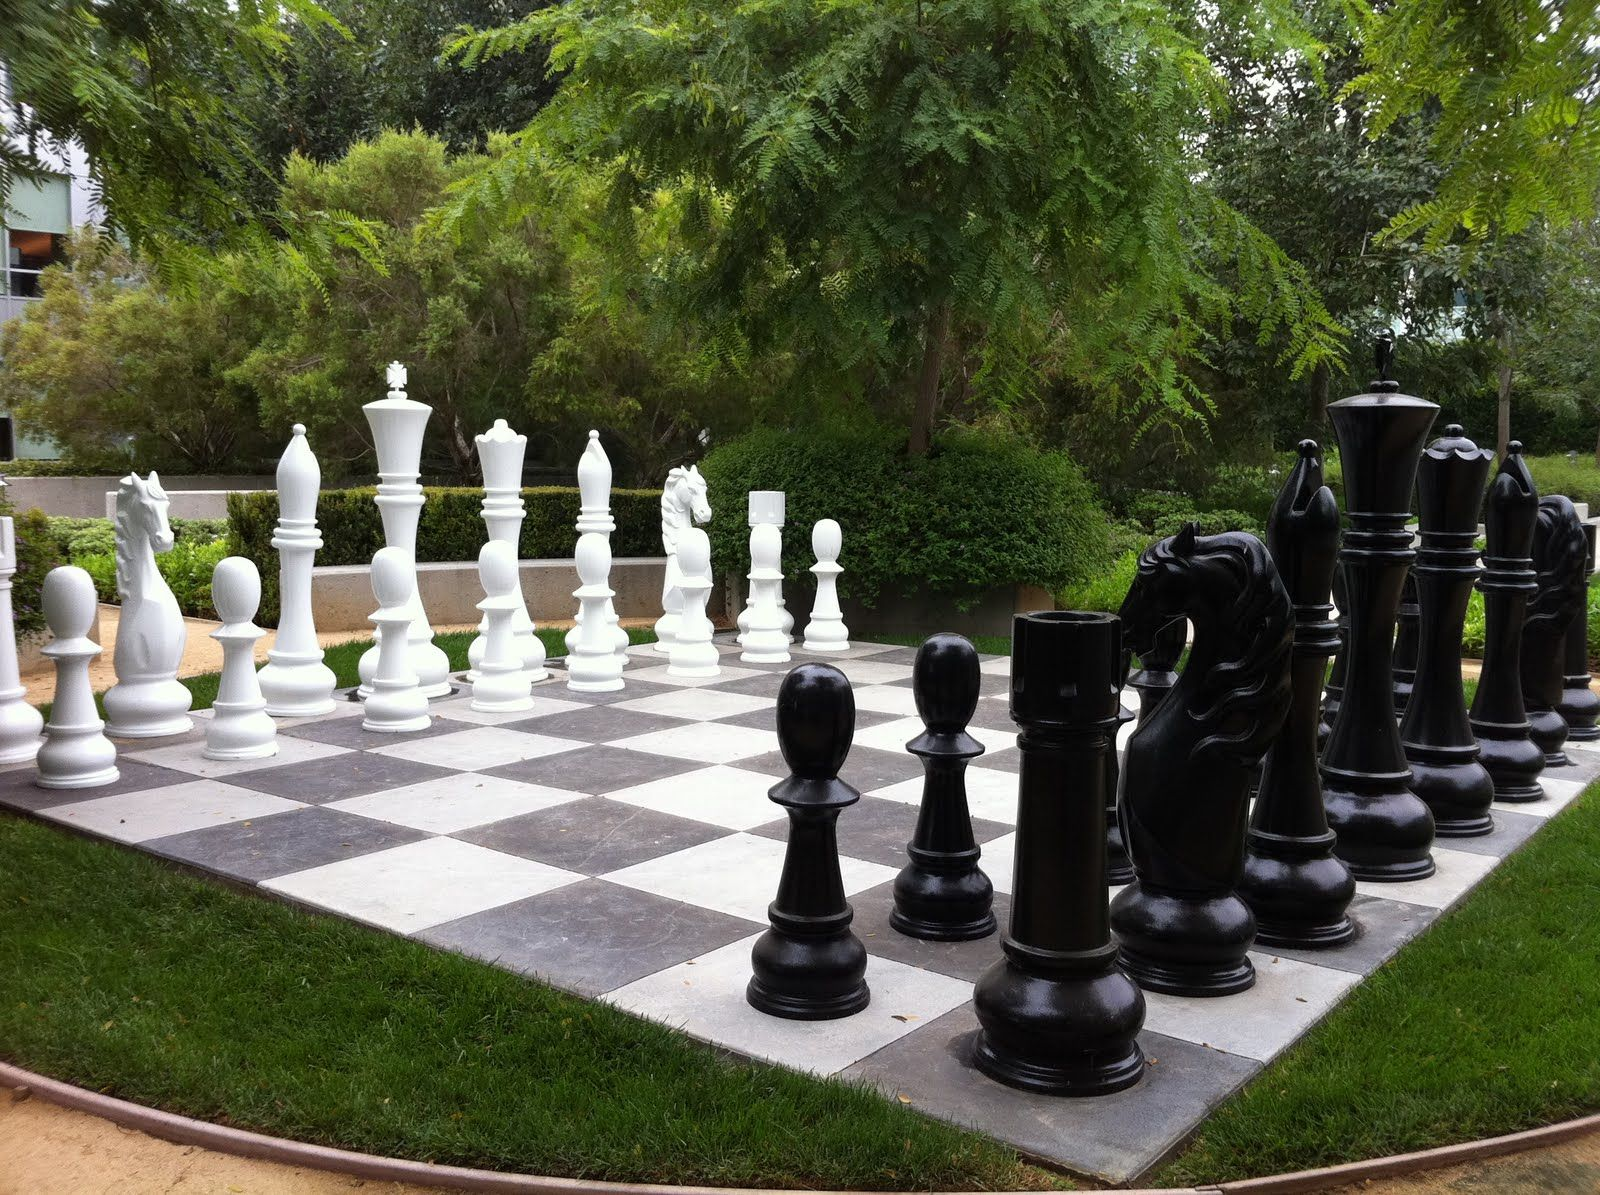 THE PLEASURE OF CHESS… LARGE OUTDOOR CHESS SETS! | Outdoor ...